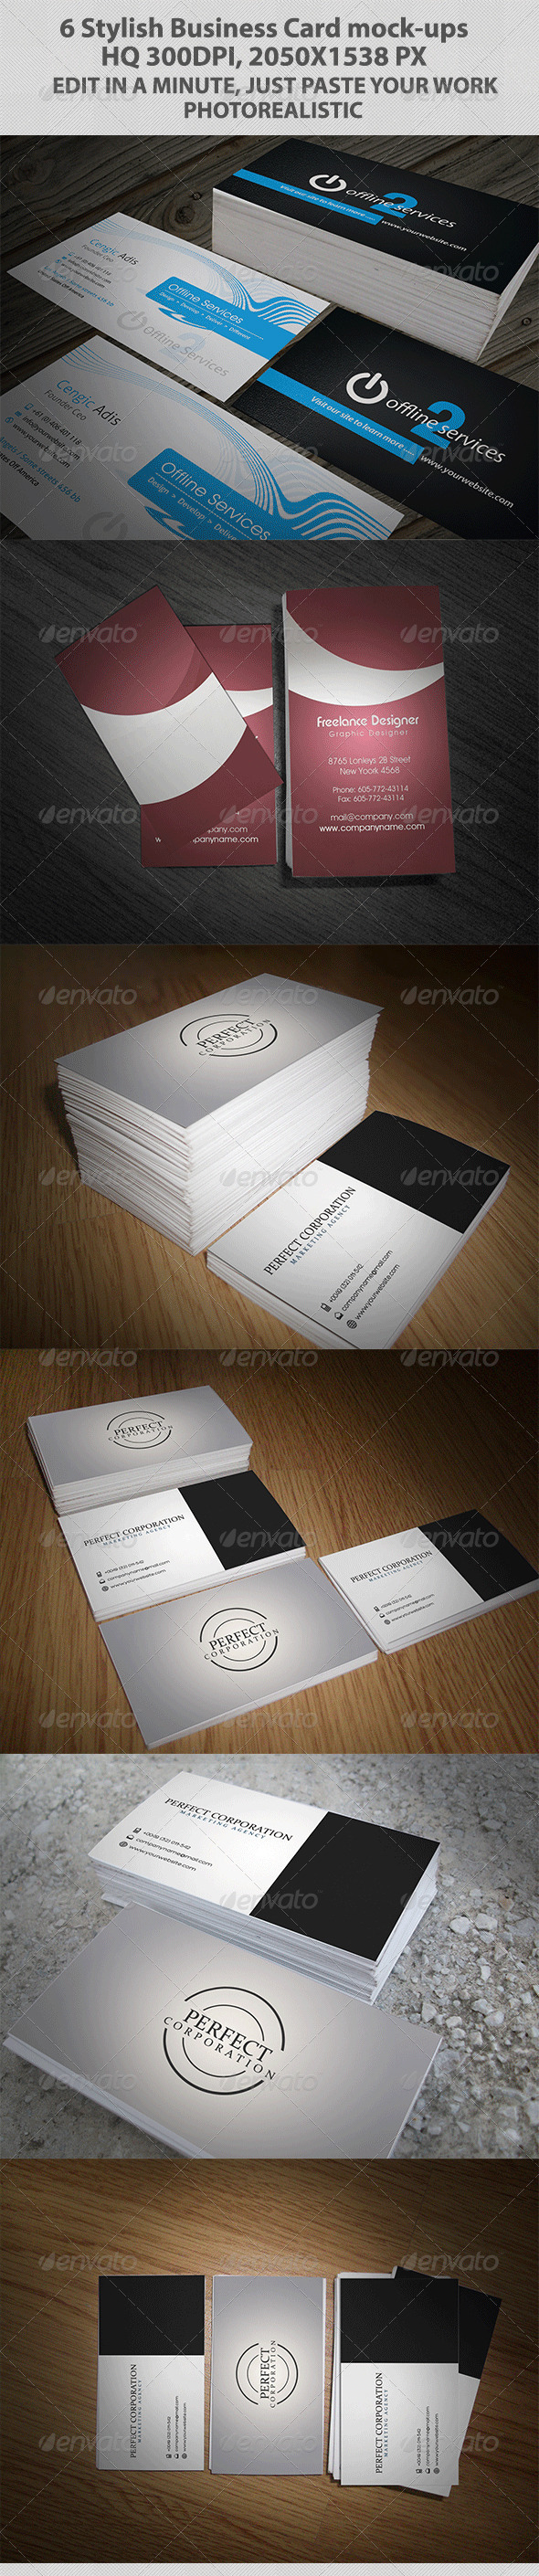 GraphicRiver Six Stylish Business Card Mock-ups 3716165